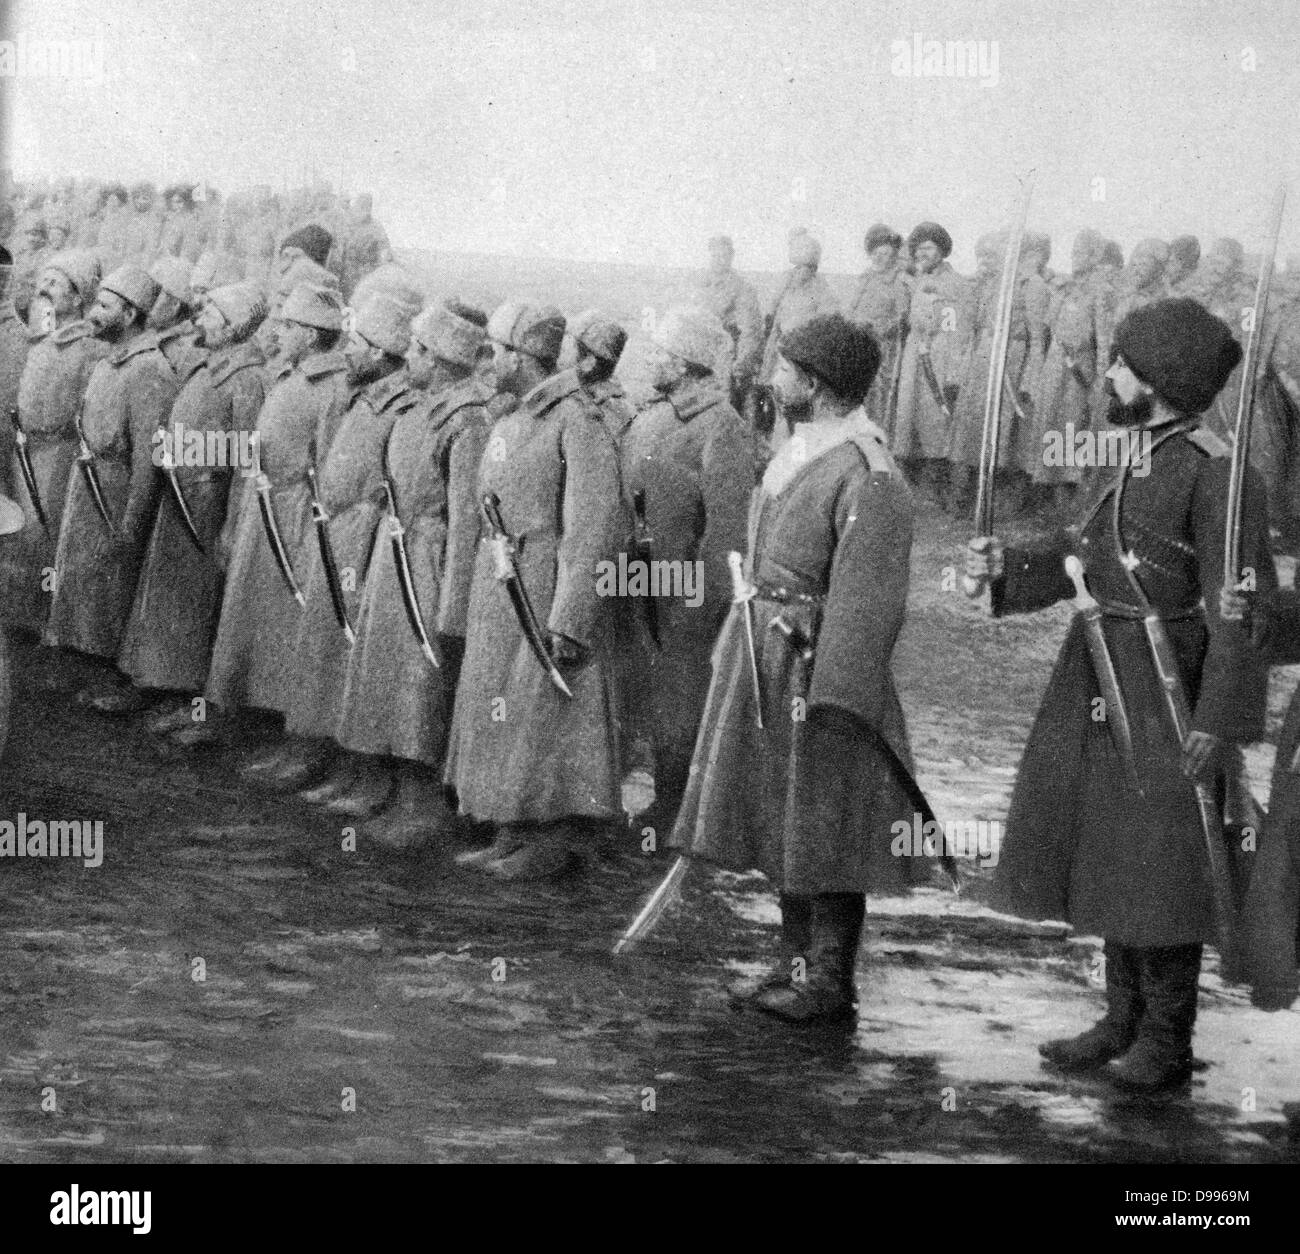 The Erzurum Offensive or Battle of Erzurum. An offensive by the Imperial Russian Army on the Caucasus Campaign that - Stock Image